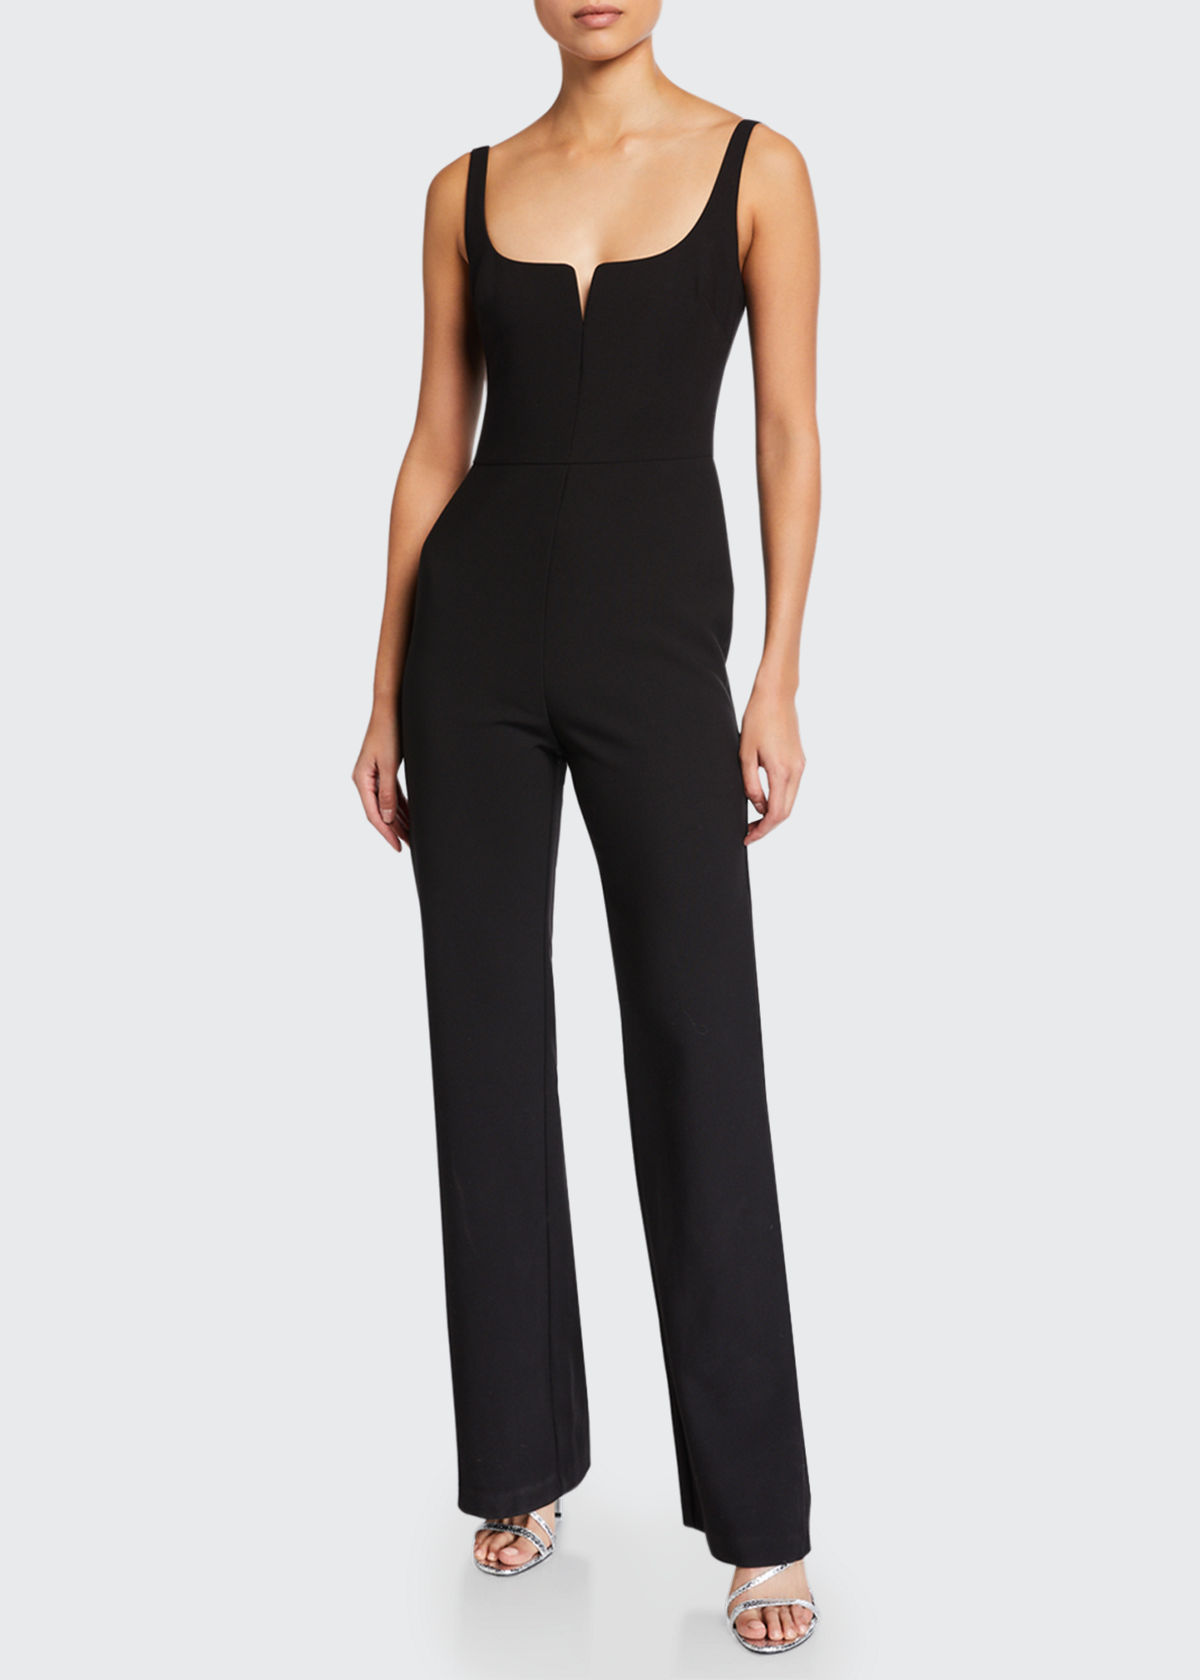 Likely CONSTANCE SLEEVELESS STRAIGHT-LEG JUMPSUIT